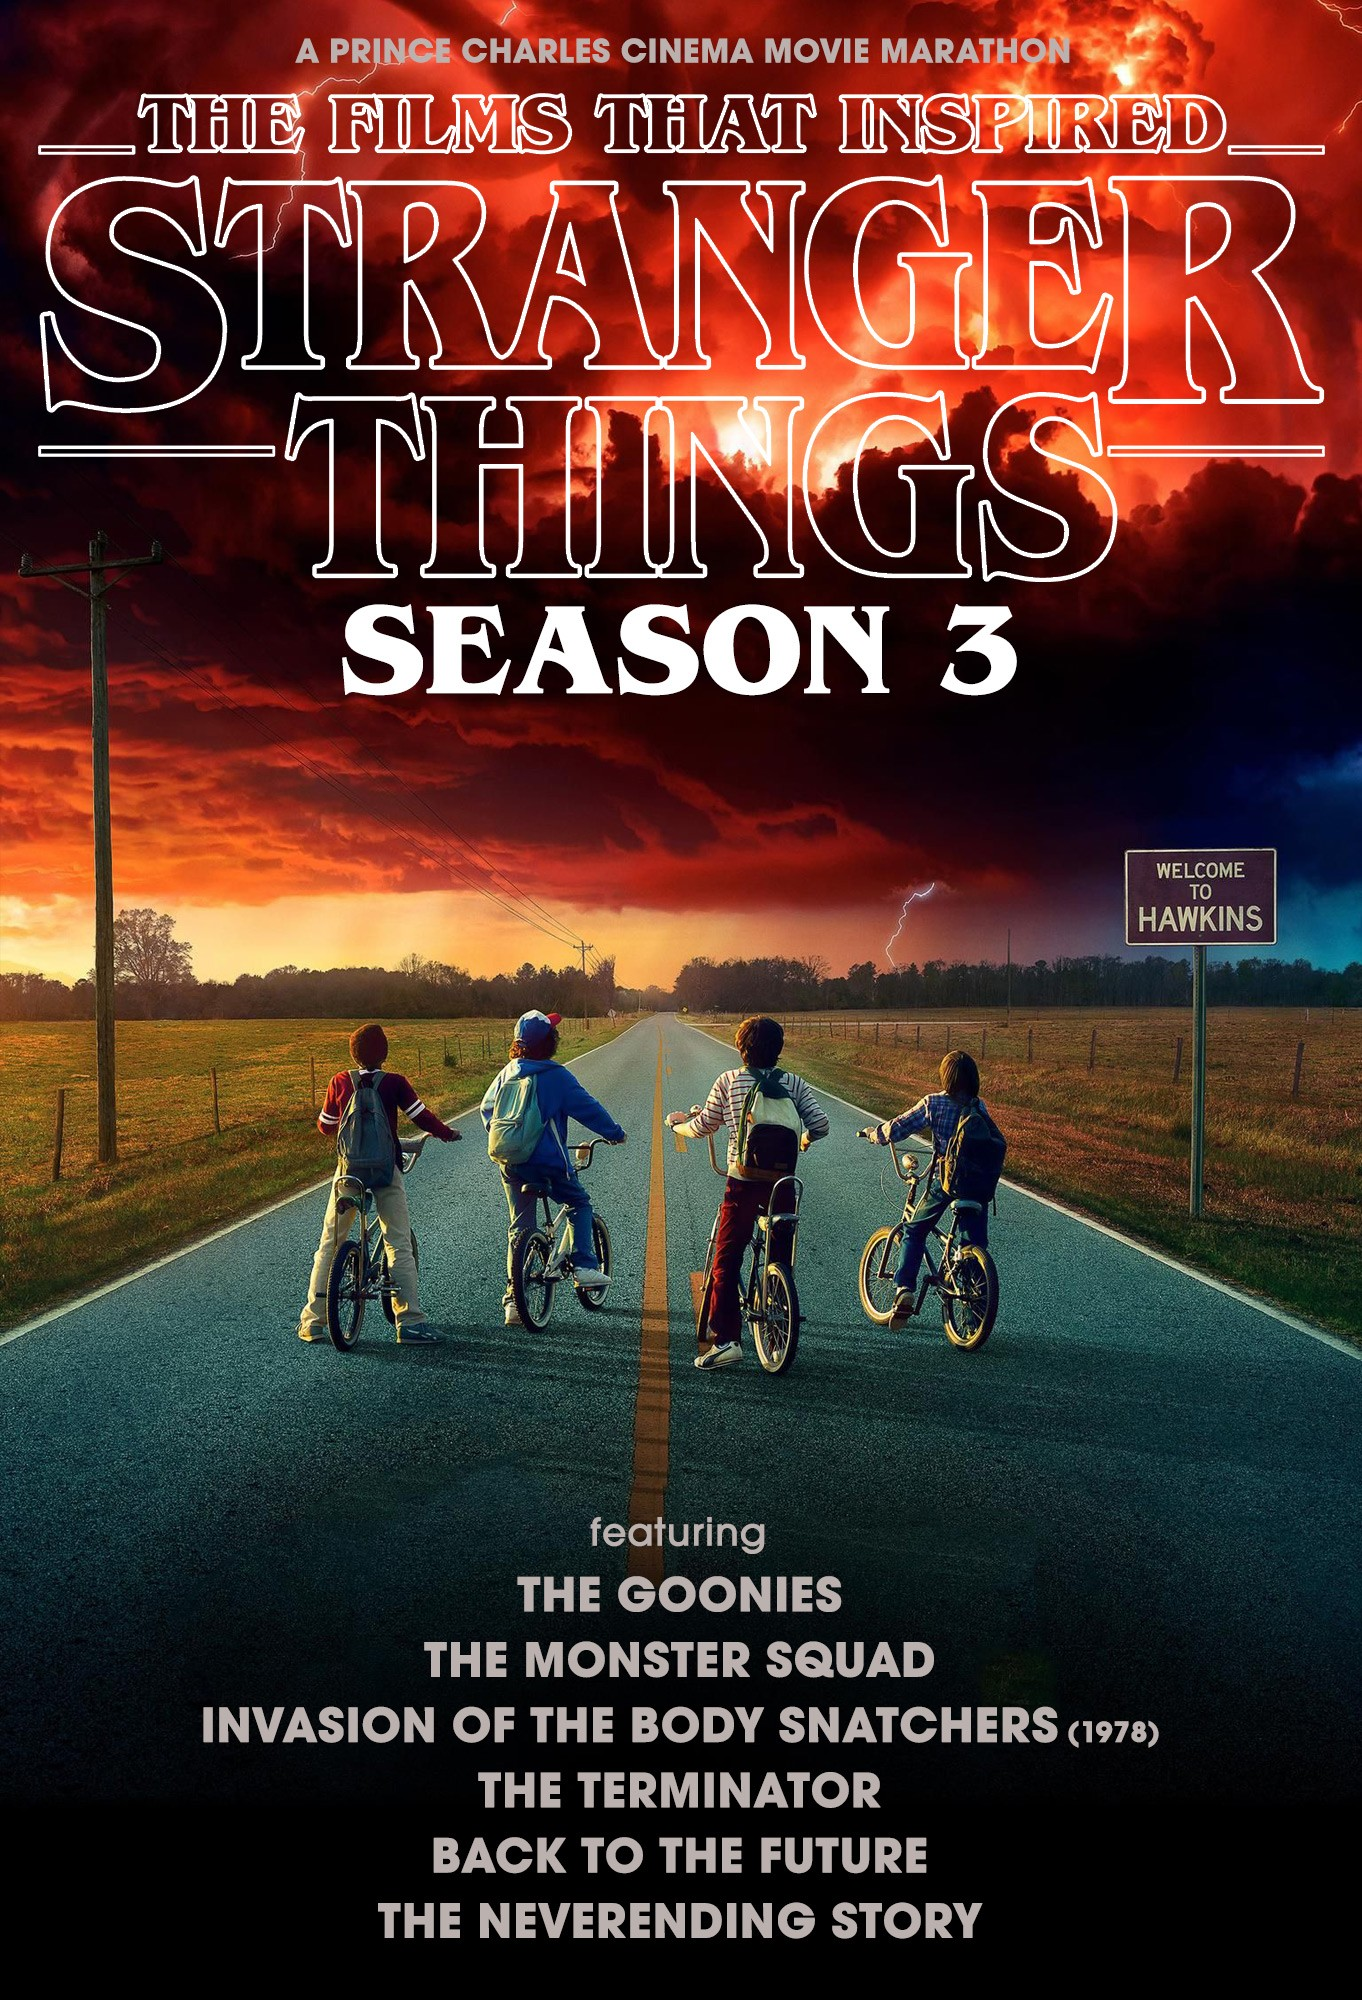 THE FILMS THAT INSPIRED 'STRANGER THINGS : SEASON 3